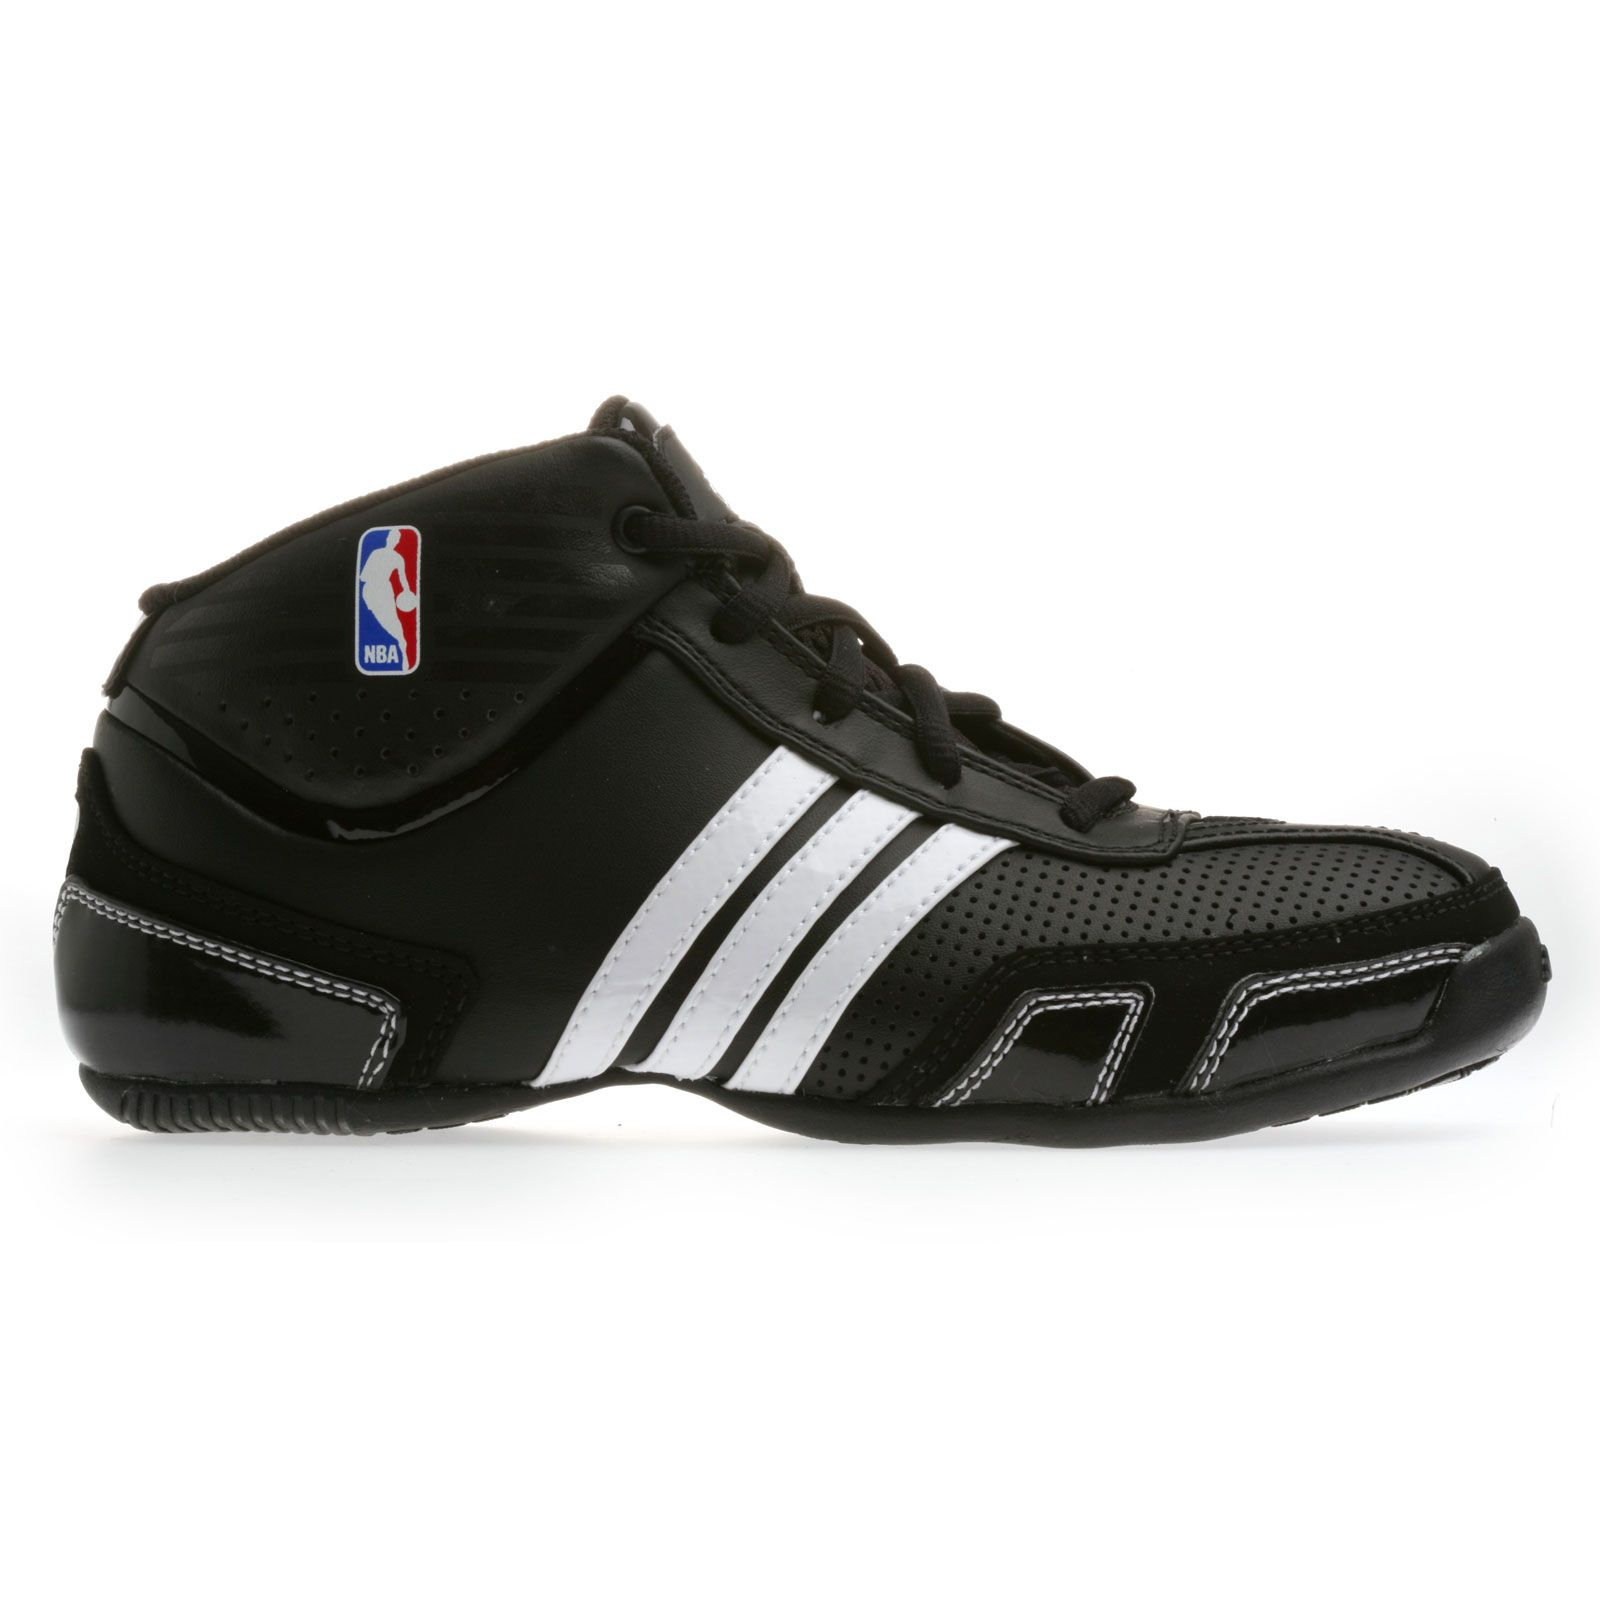 Nba Adidas De Semi Feather Noire Chaussures Montantes Speed Sport ffwx6grEq